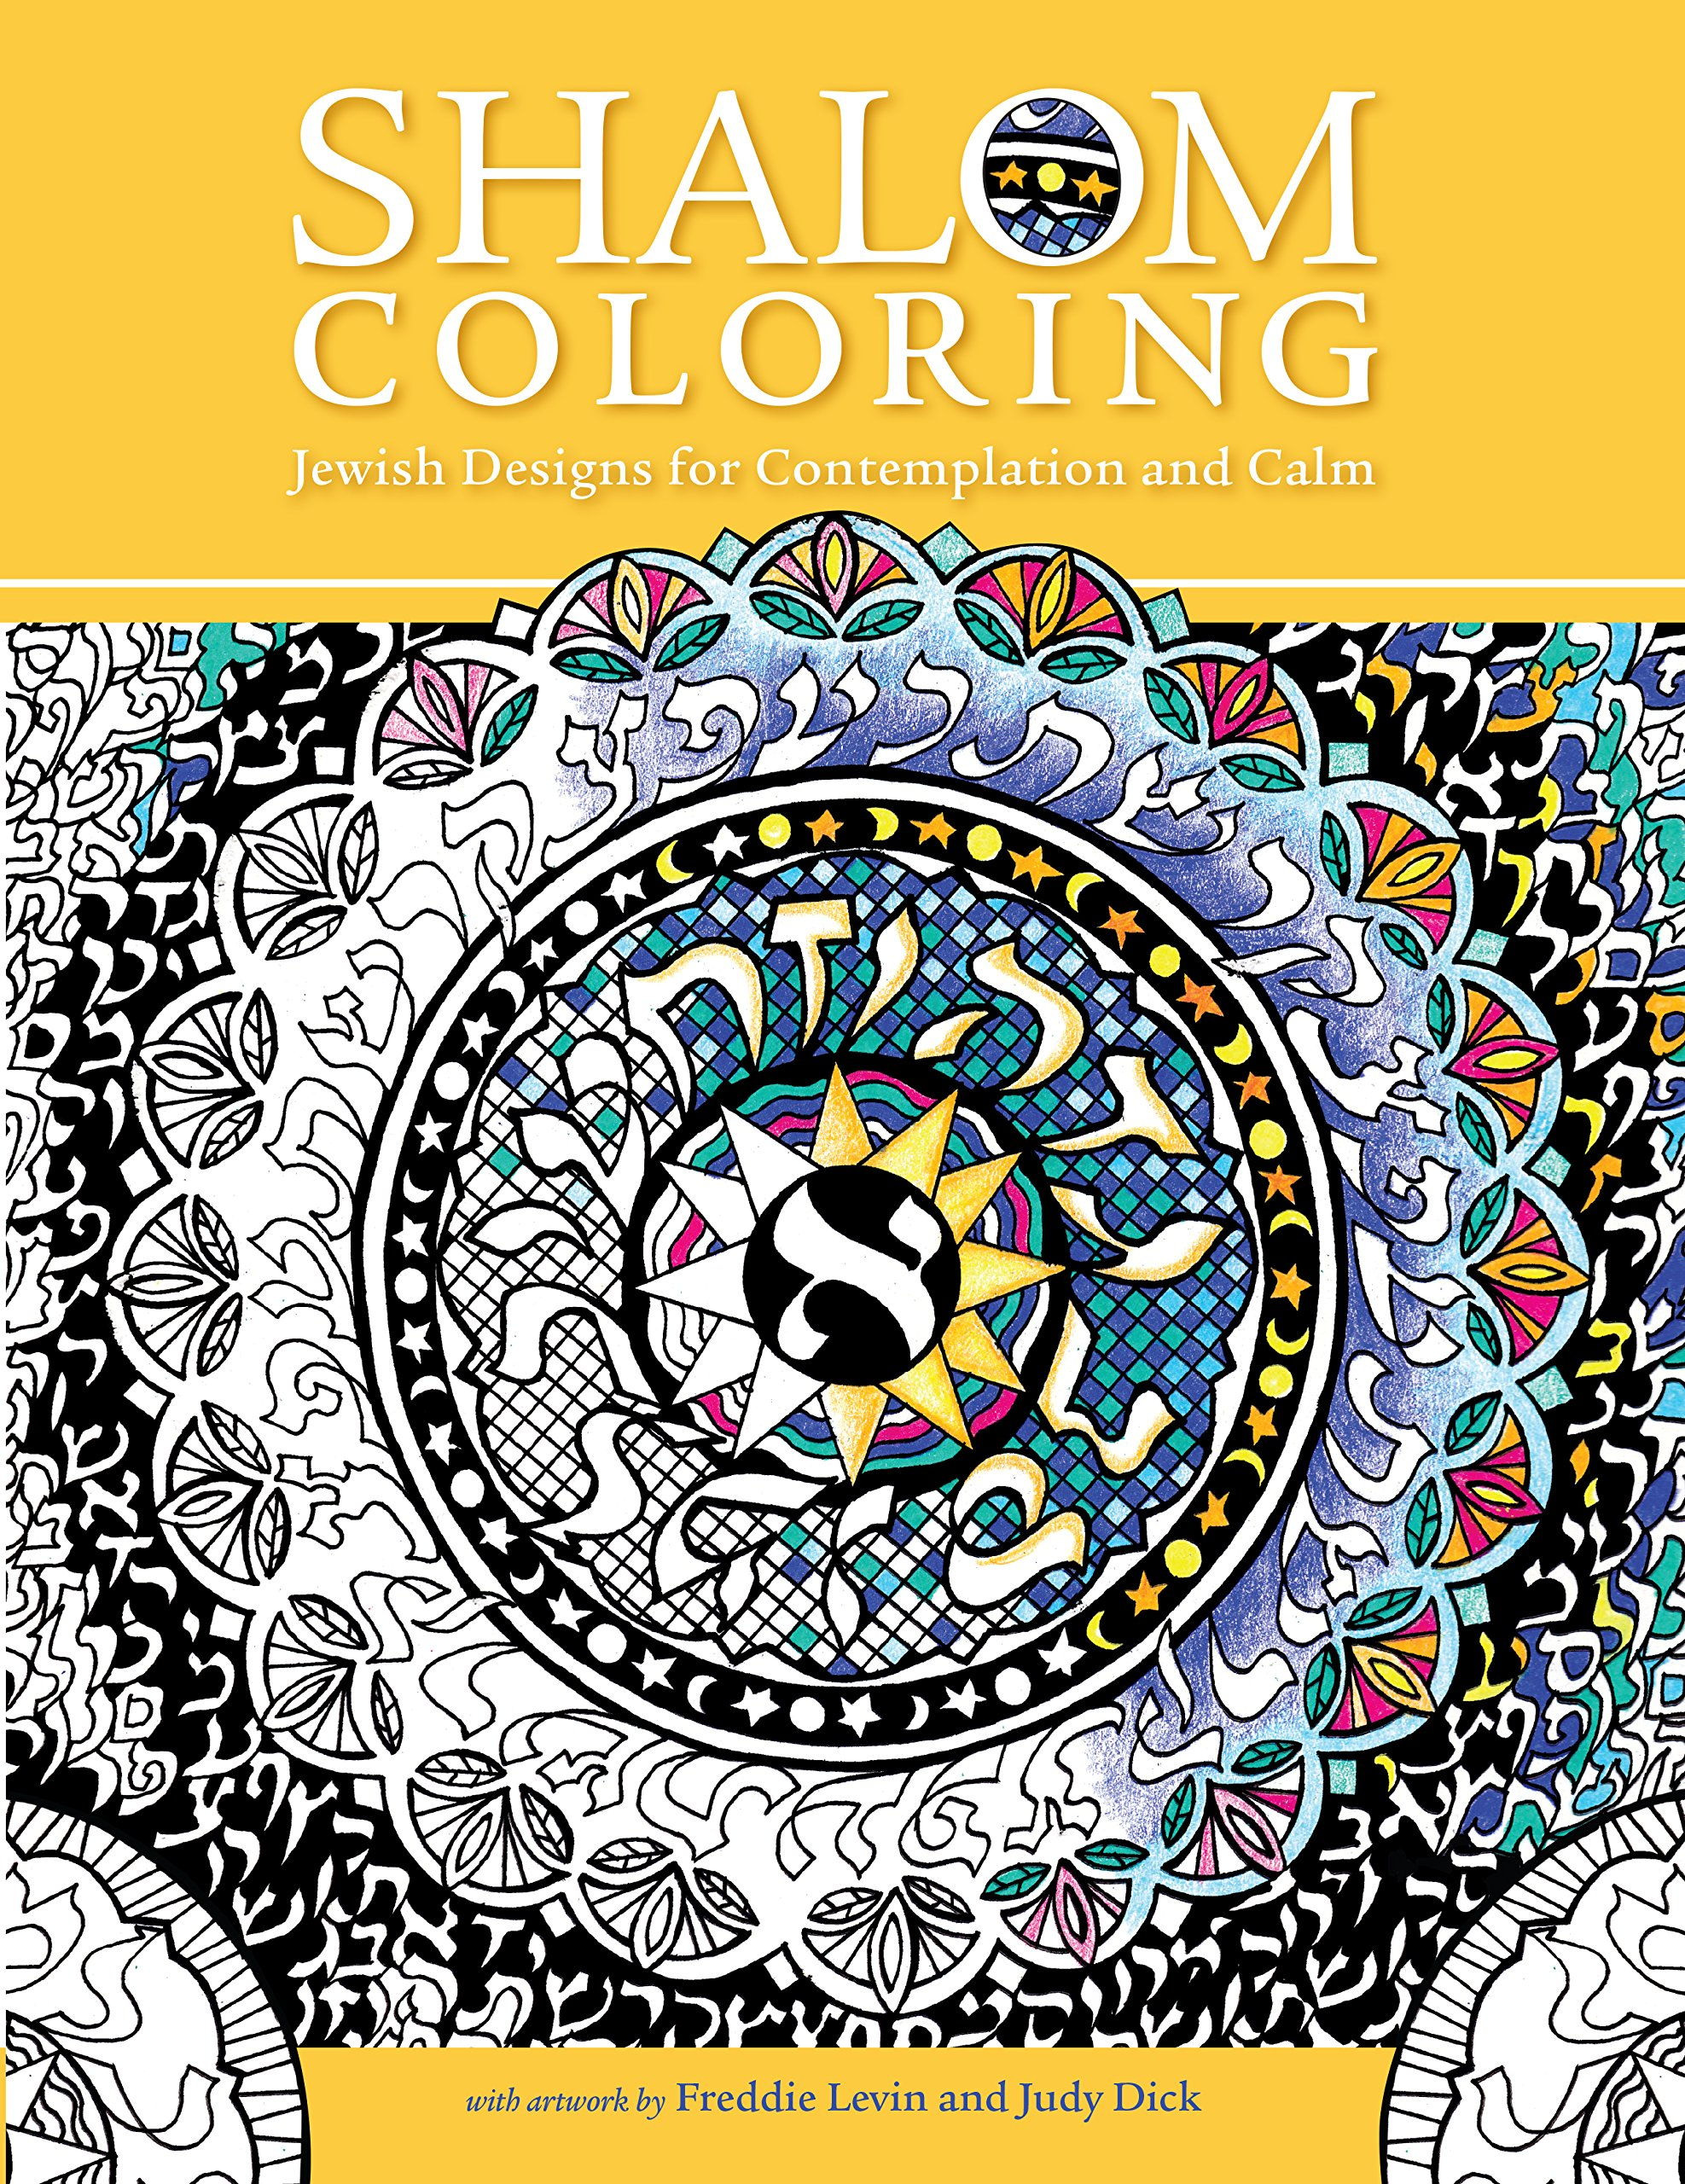 coloring books are all the craze u0026 now there u0027s a jewish one